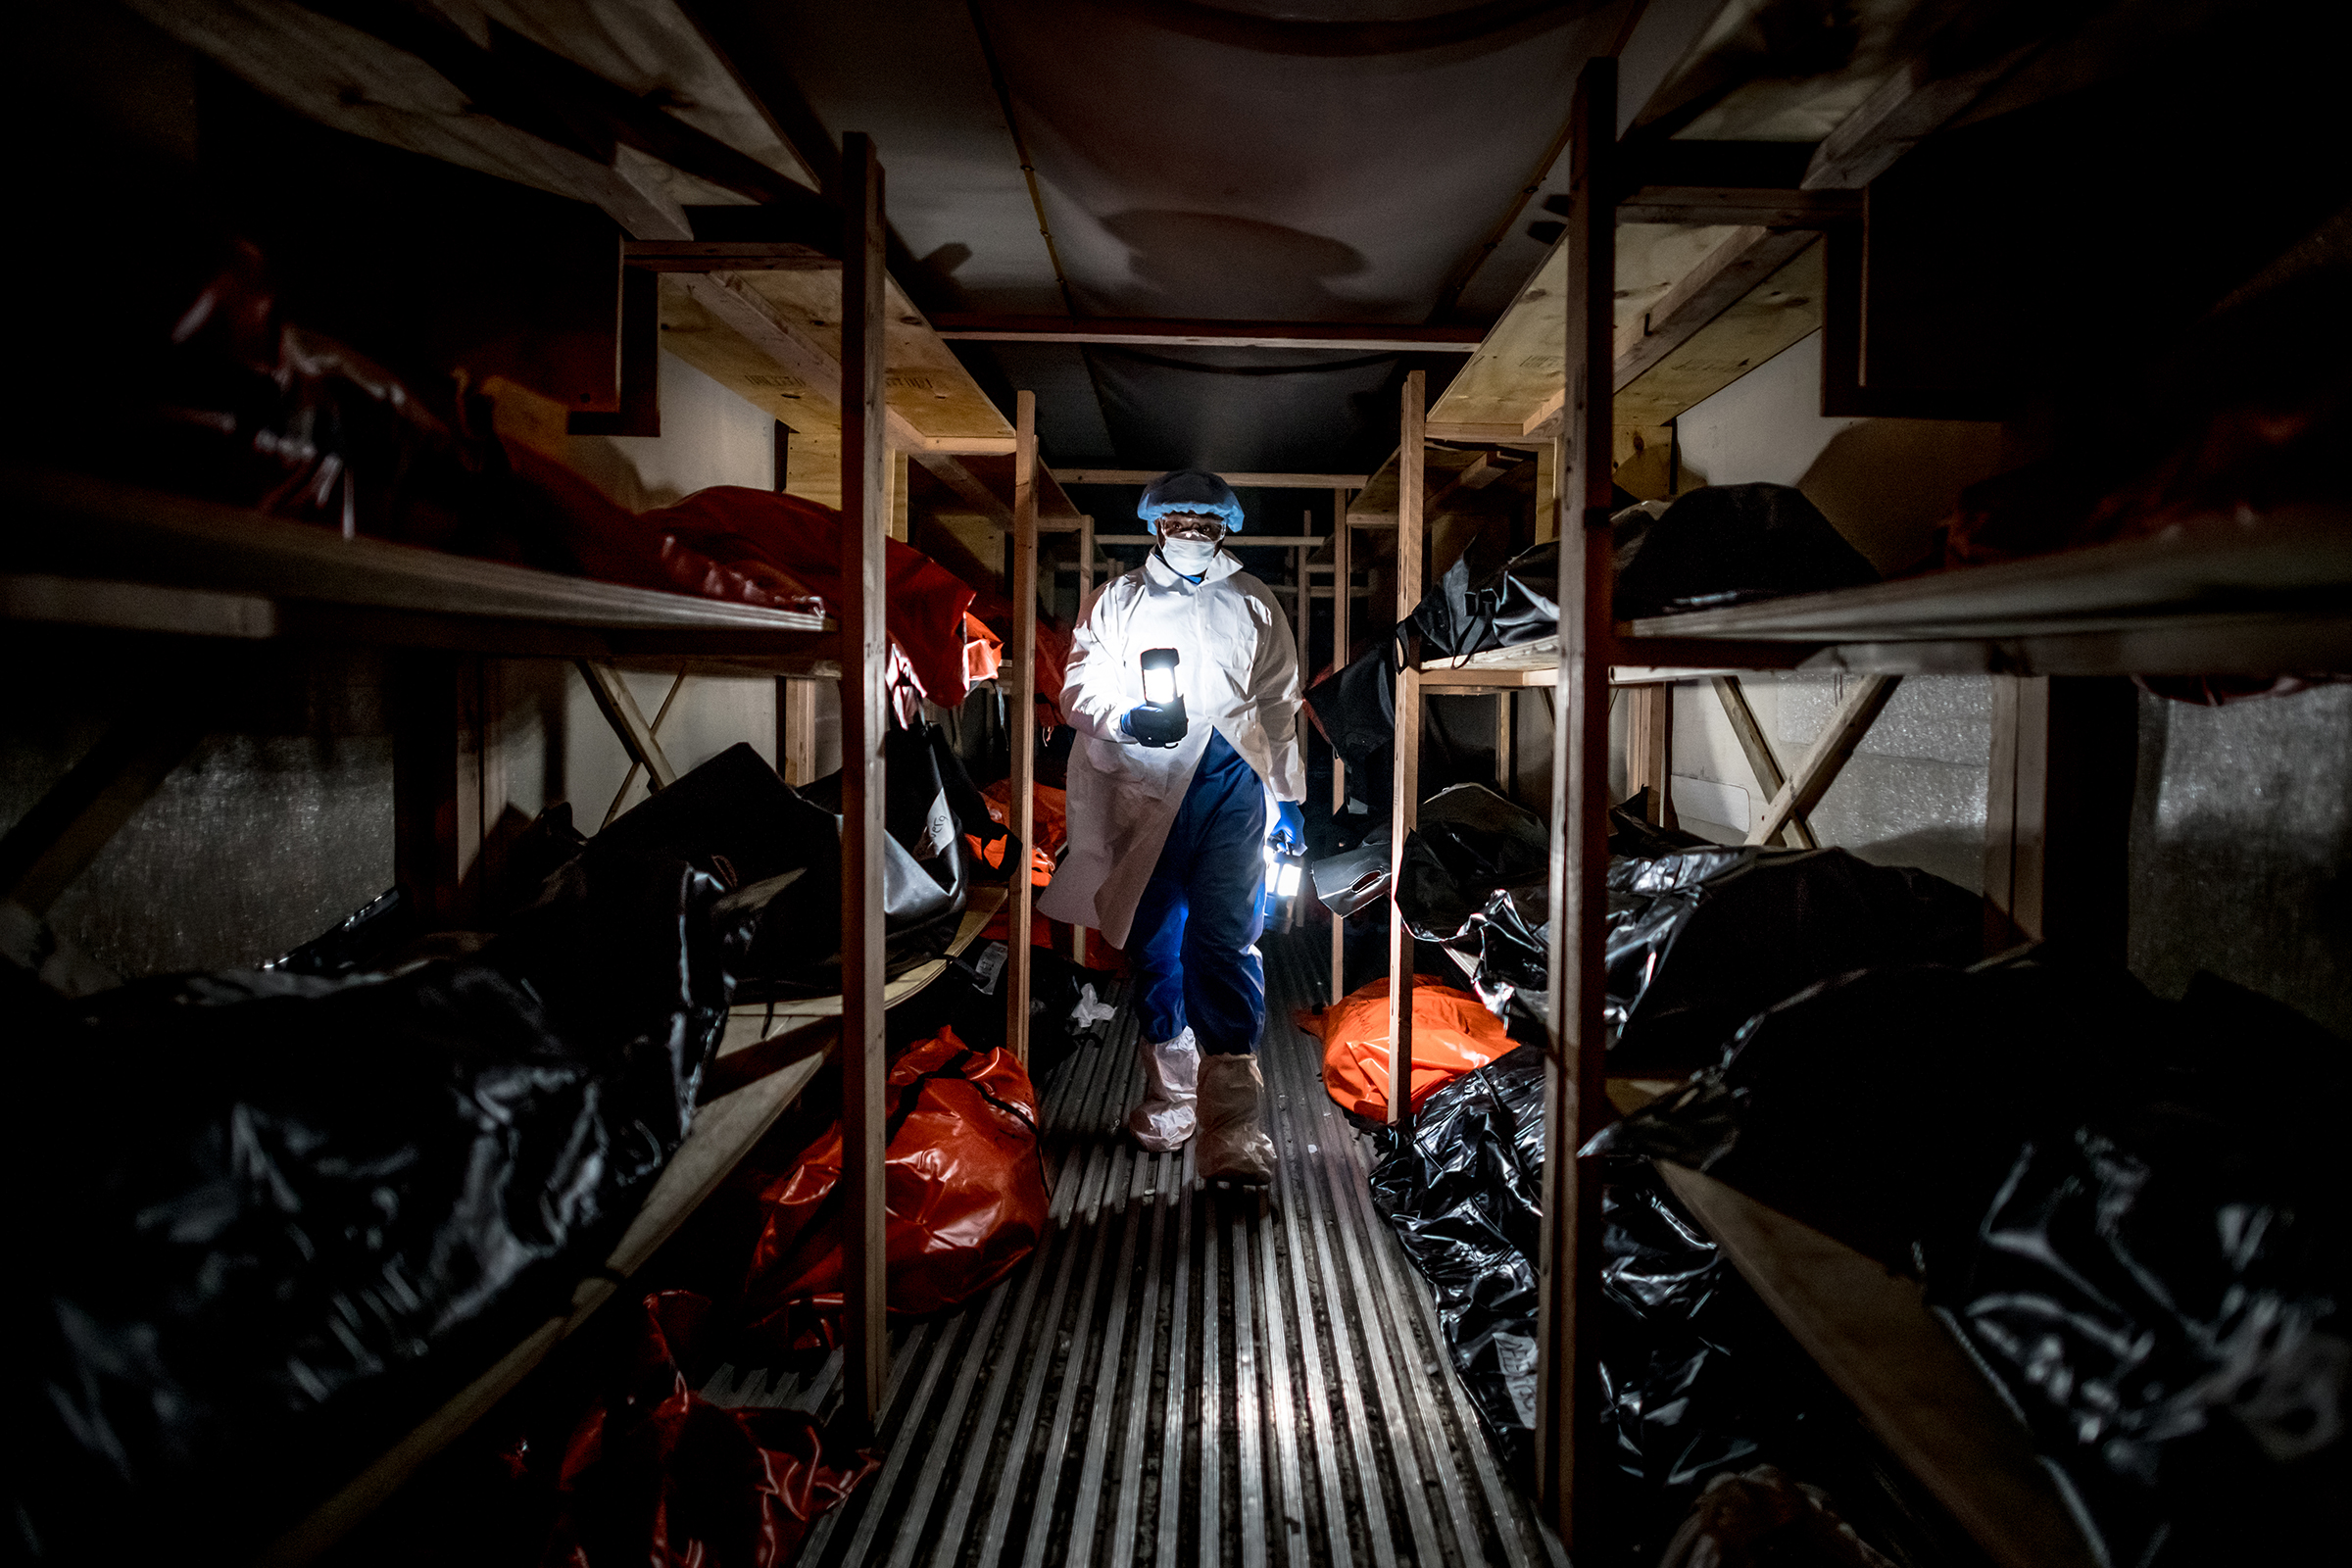 "Kyle Edwards, 39, collects lanterns from inside a temporary morgue outside the Wyckoff Heights Medical Center on April 22. Edwards, whose job sometimes involved moving bodies of COVID-19 victims to the morgue, worked 7 a.m. to 10 p.m. shifts during the worst of the pandemic and, like many members of his team, contracted the virus. His family asked him to take time off until the virus died down, but Edwards kept working. He and his wife trained their 5-year-old son to not hug him immediately when he gets home: ""Daddy has to wash the coronavirus off him when he gets home from the hospital,"" the boy will tell others."